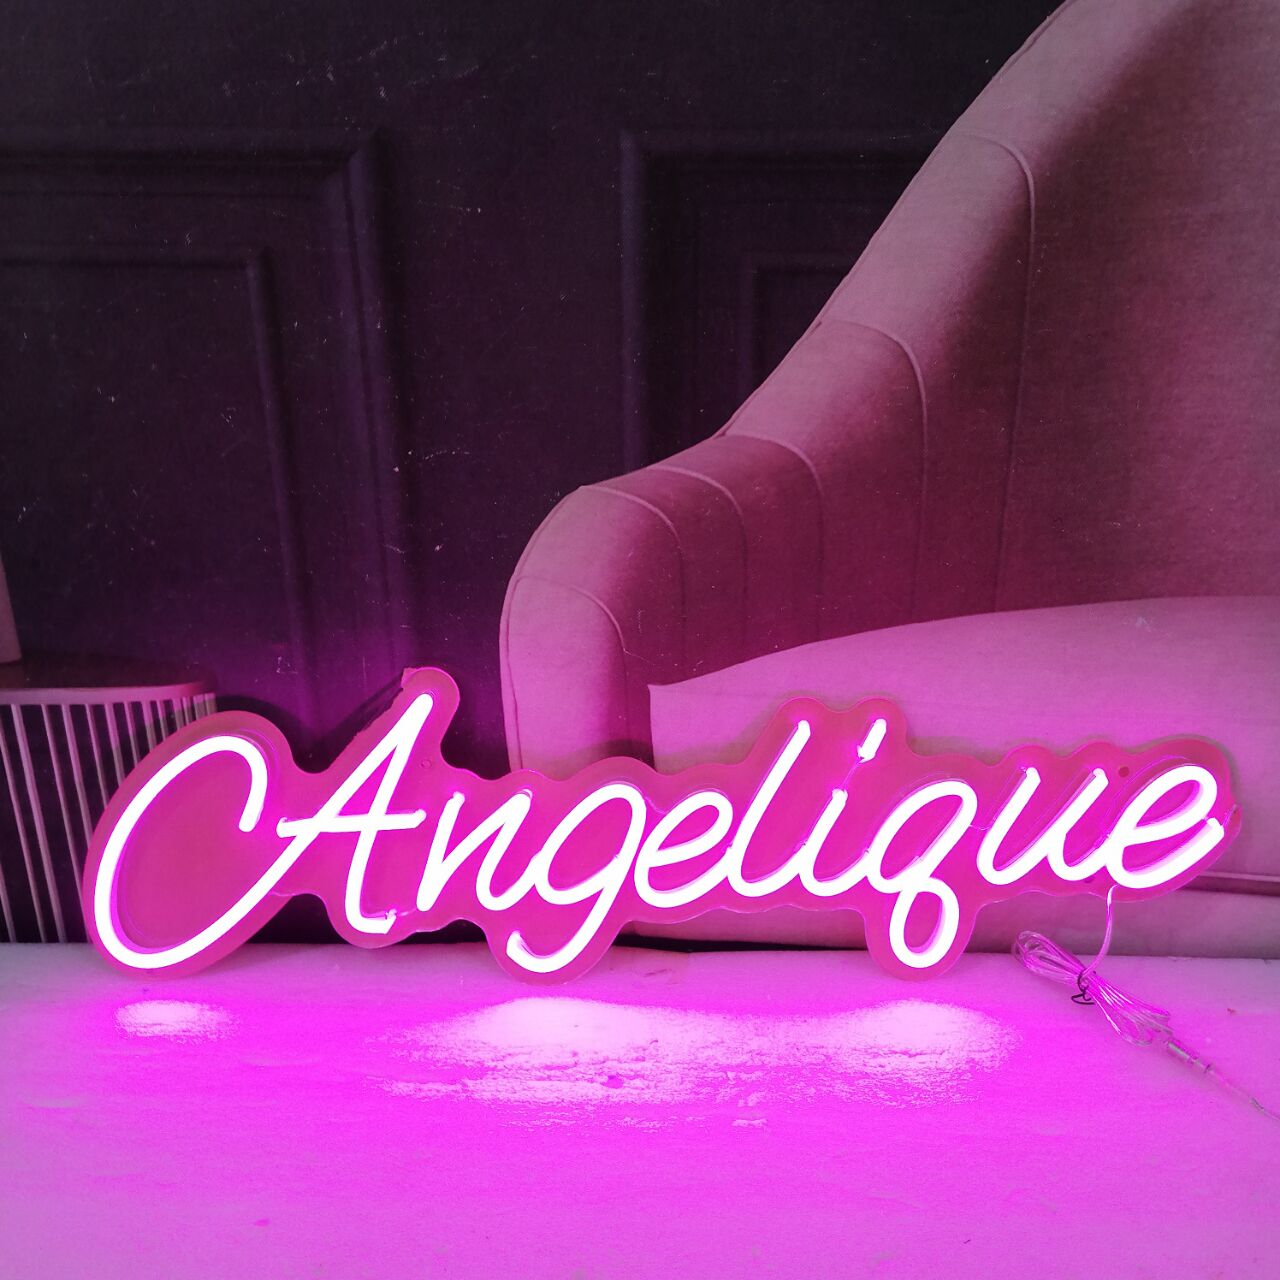 Personalized Logo Customized Letter LED Custom Neon Signs Light for Girlfriend Gift  Birthday Decoration Valentine's Day